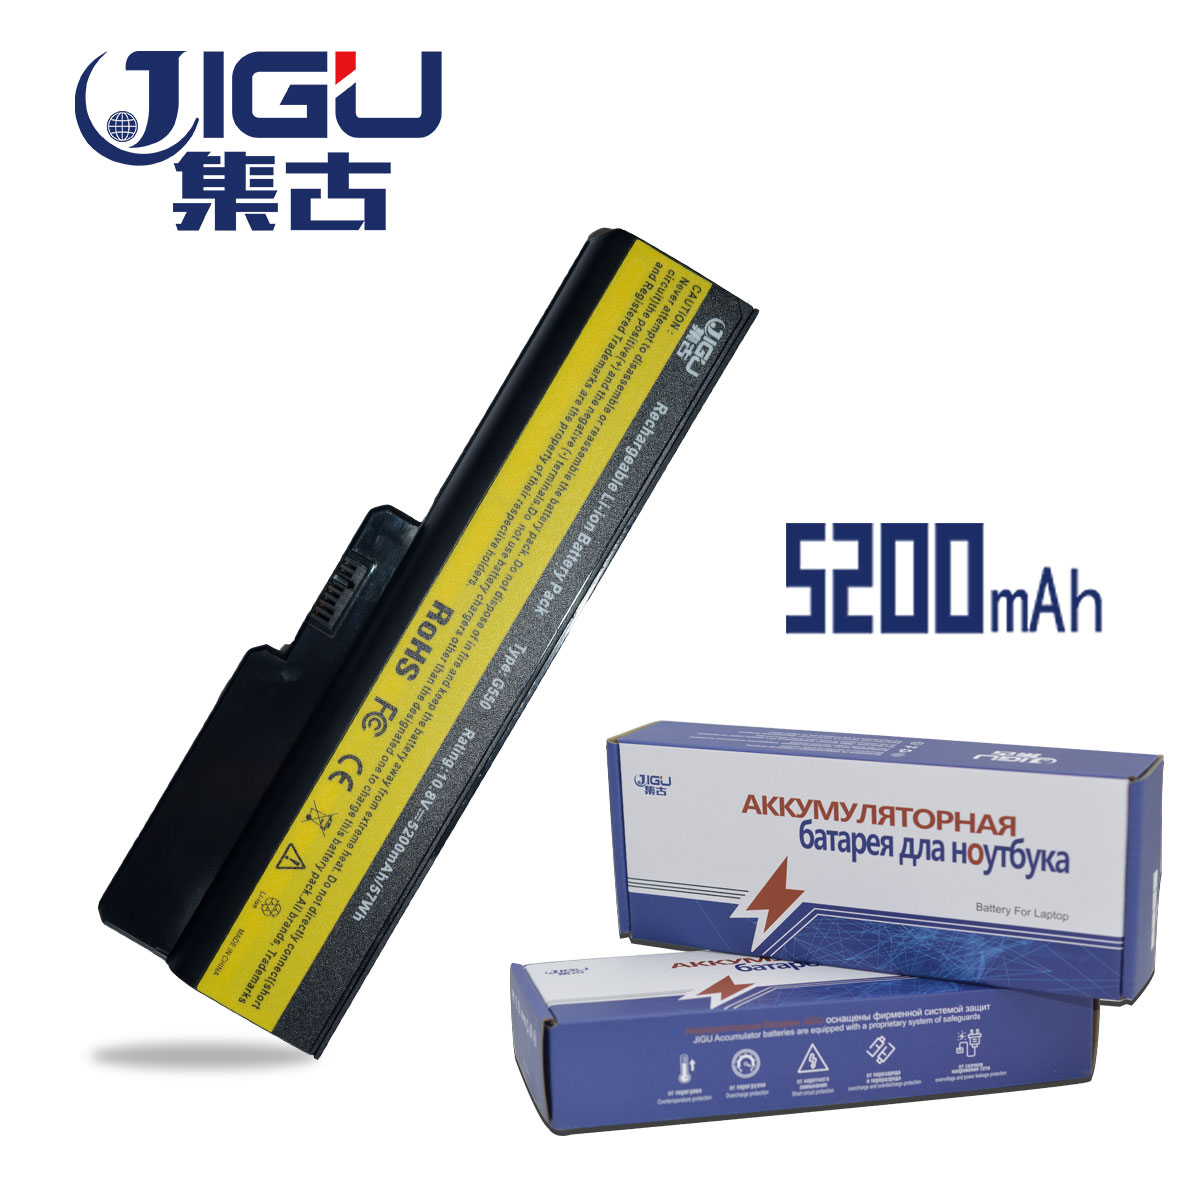 JIGU Laptop Battery For IBM Lenovo 3000 G455 For Lenovo N500 G550 IdeaPad G430 V460 Z360 B460 V460D L08S6Y02 L08S6D02 L08L6Y02JIGU Laptop Battery For IBM Lenovo 3000 G455 For Lenovo N500 G550 IdeaPad G430 V460 Z360 B460 V460D L08S6Y02 L08S6D02 L08L6Y02